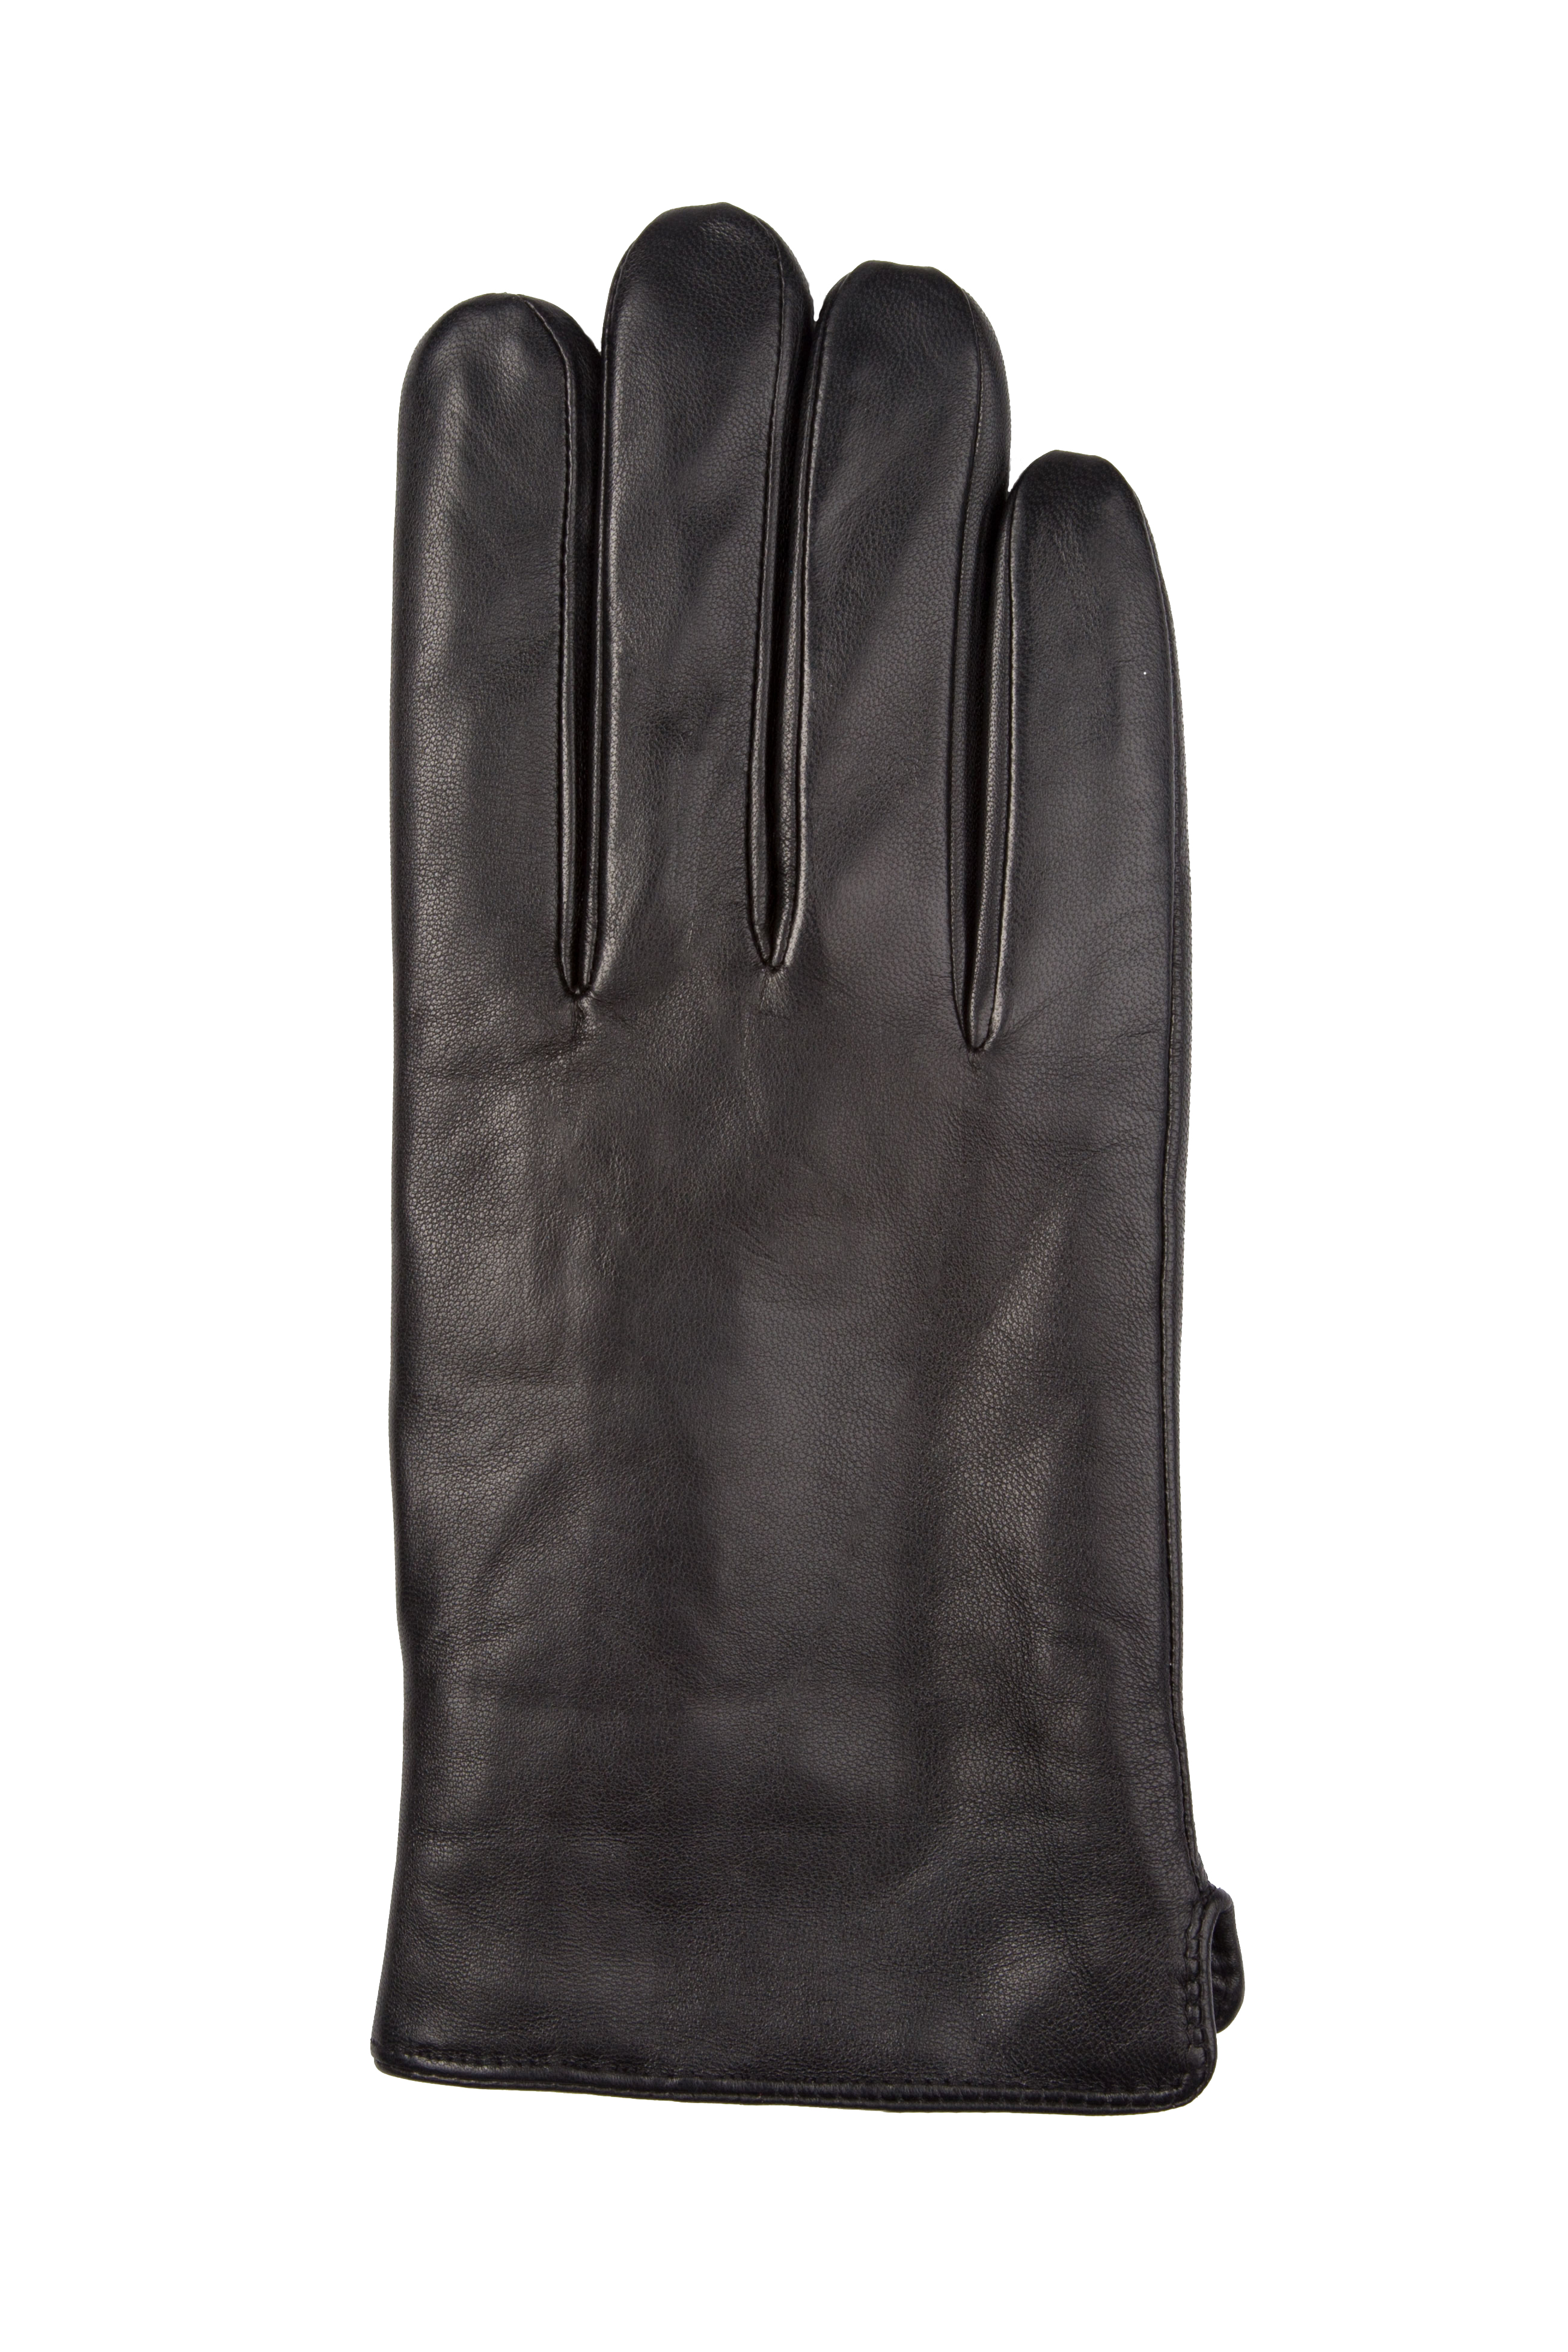 Overstock mens leather gloves - The Lords Men S Leather Dress Gloves With Long Fingers